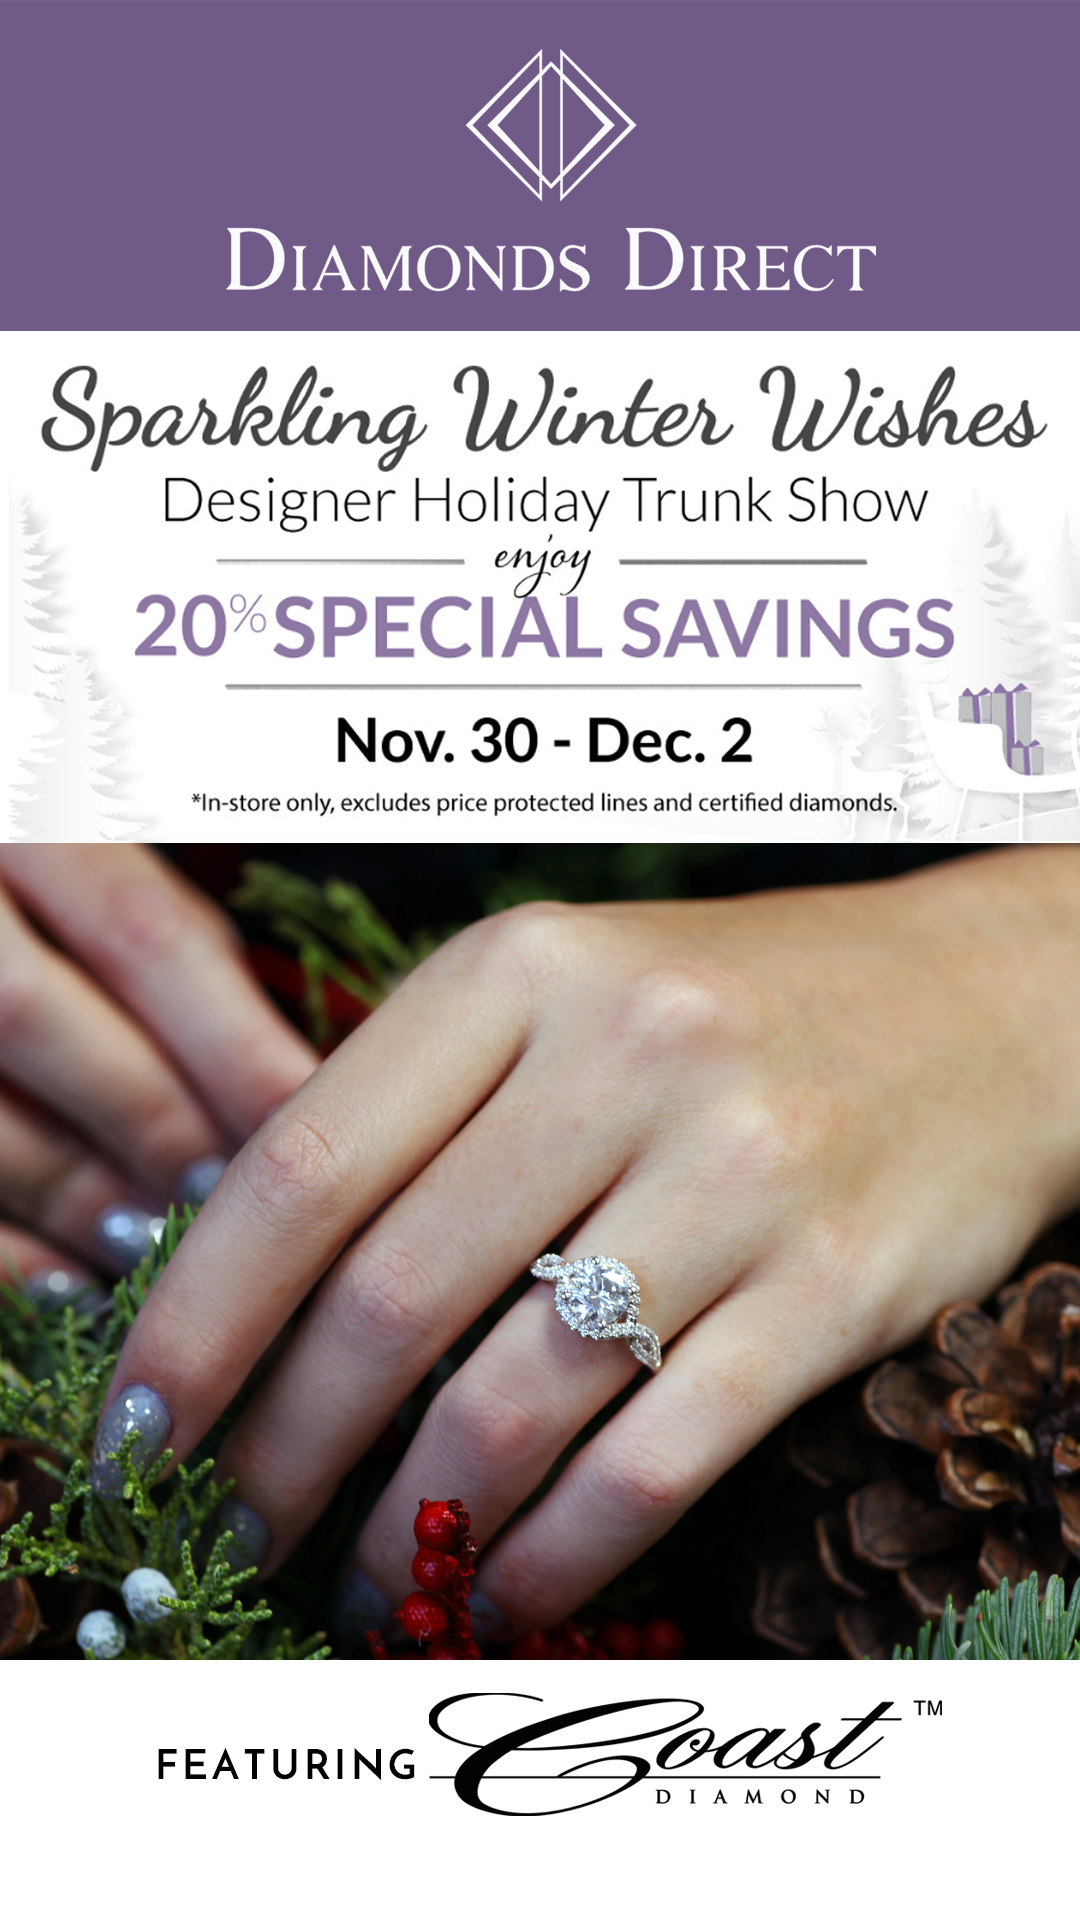 Attention Raleigh, NC Residents! Visit the Diamonds Direct Designer Holiday Trunk Show Featuring Coast Diamond.